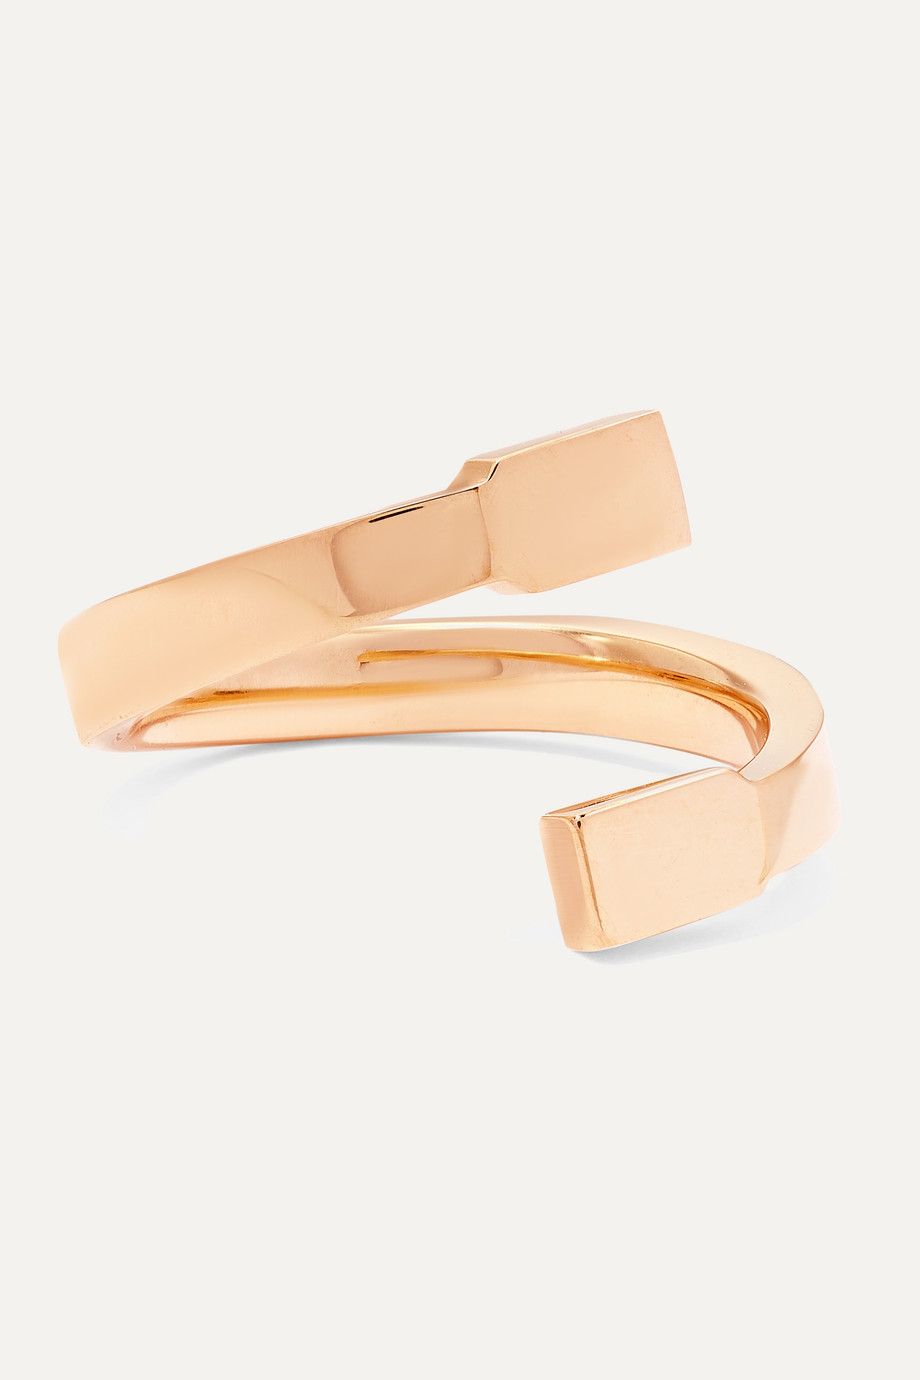 Repossi Serti Sur Vide 18-karat rose gold ring